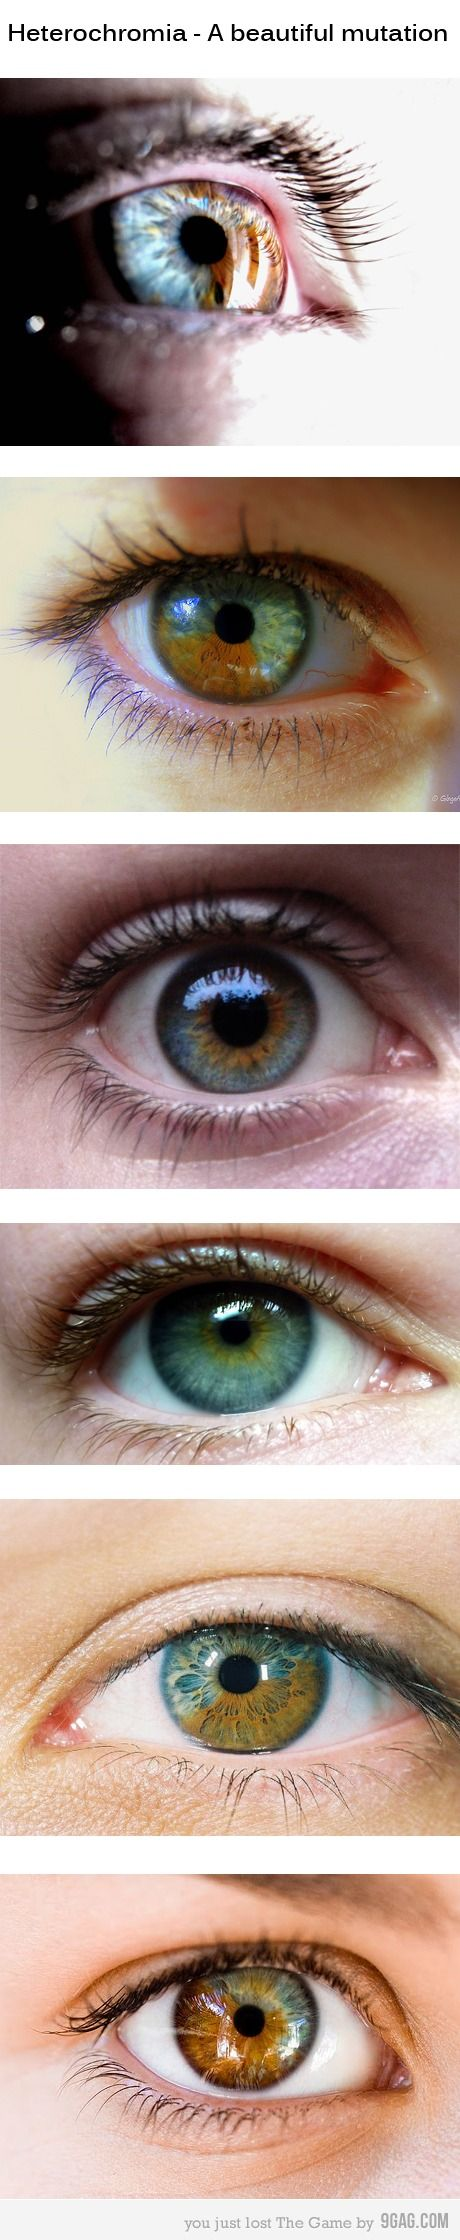 I have this :) Heterochromia - Just some beautiful variations.